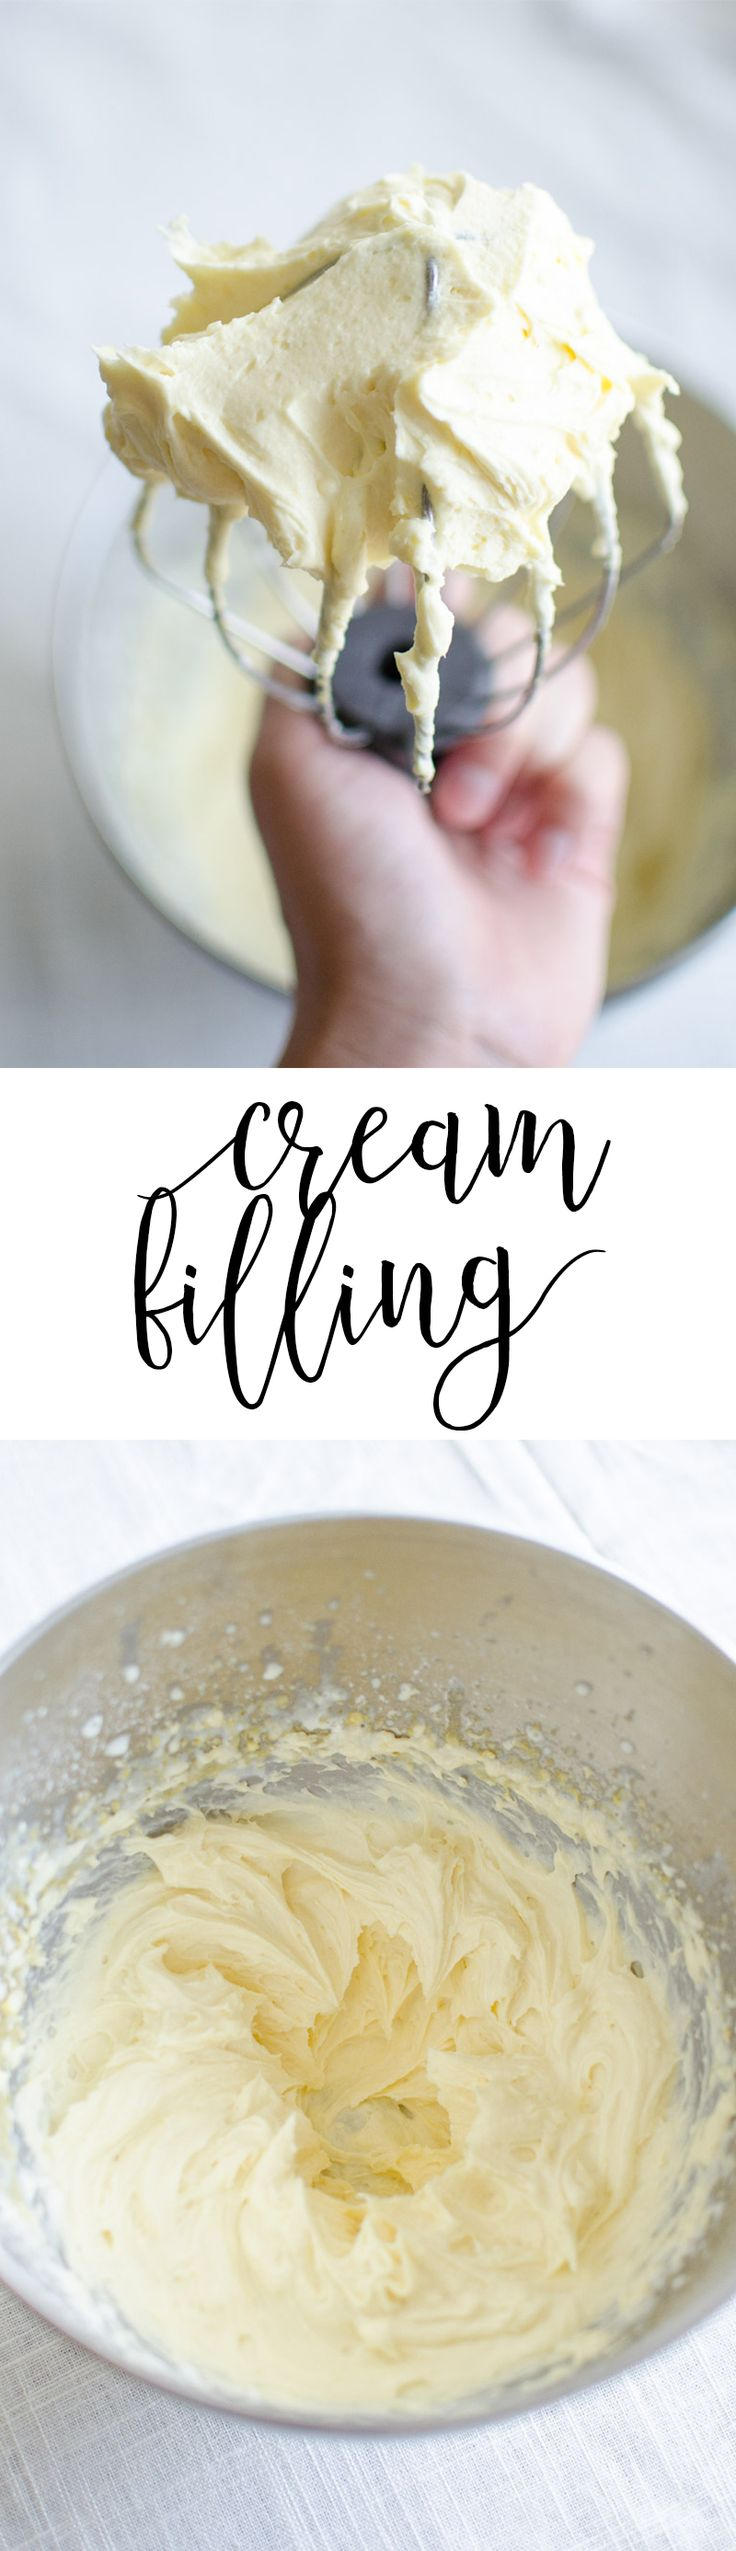 I've used this little cream filling for multiple recipes and have fallen in love with it. It's rich and creamy, without being to sweet. Perfect filling for pastries, trifles, or any other cream filling you might need! This was the sweet cream filling that was featured in our Cream Puffs (same ones we took to …